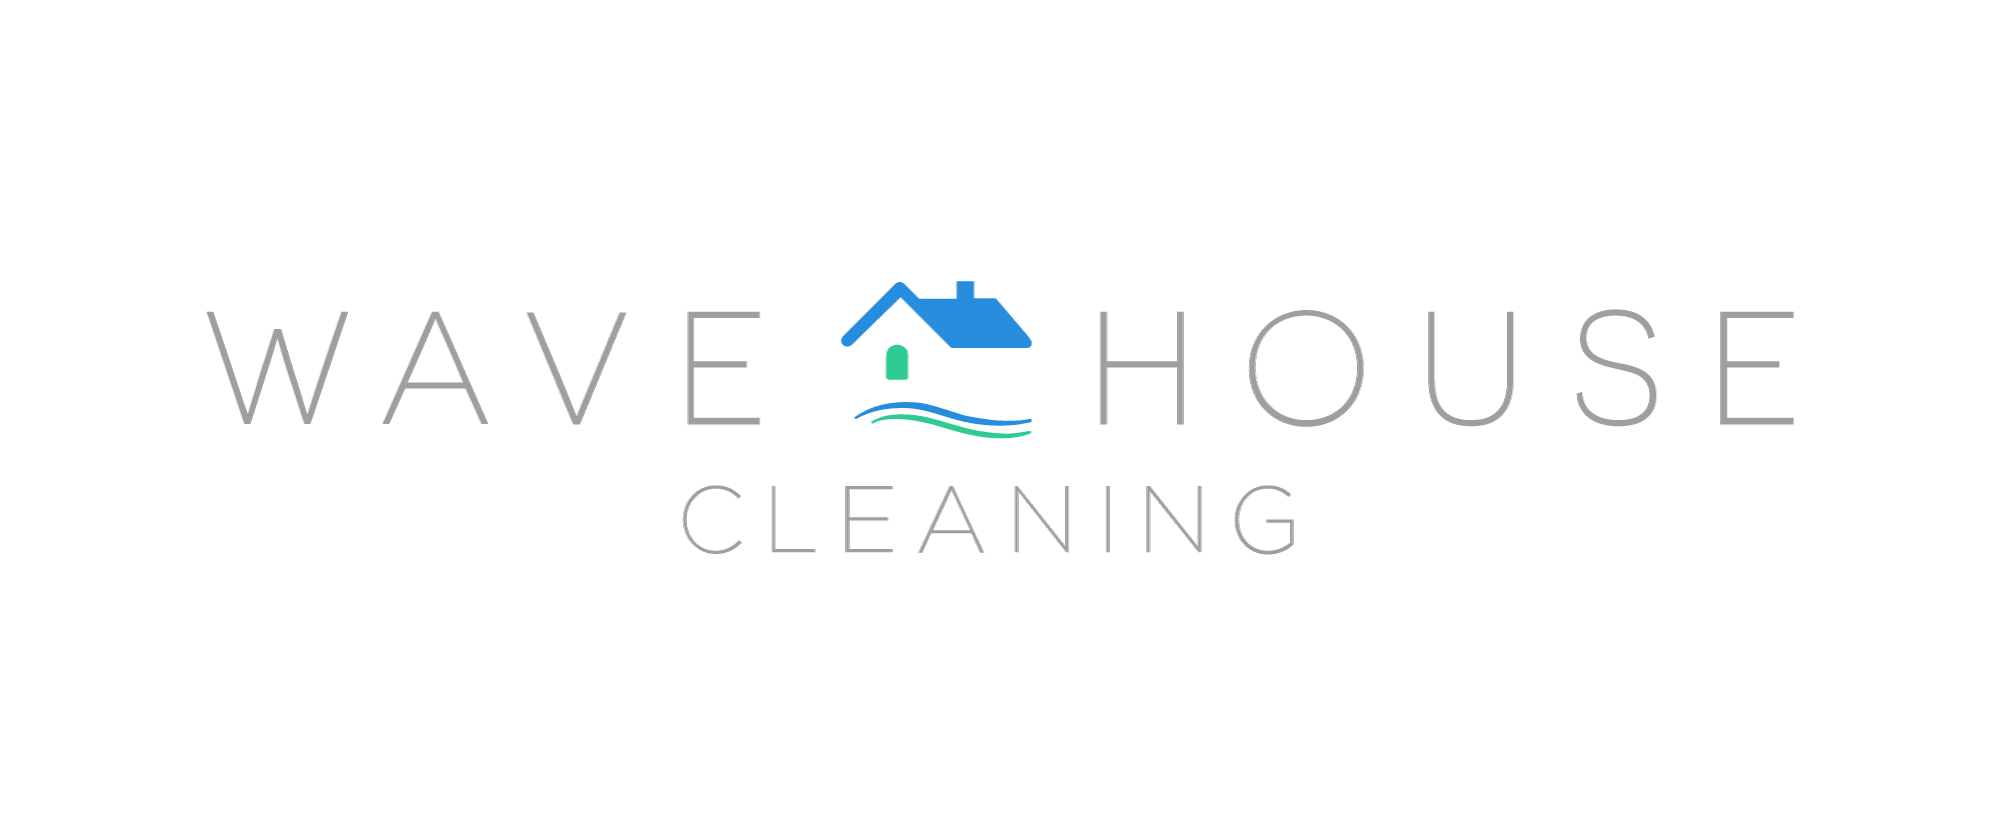 wave house cleaning services